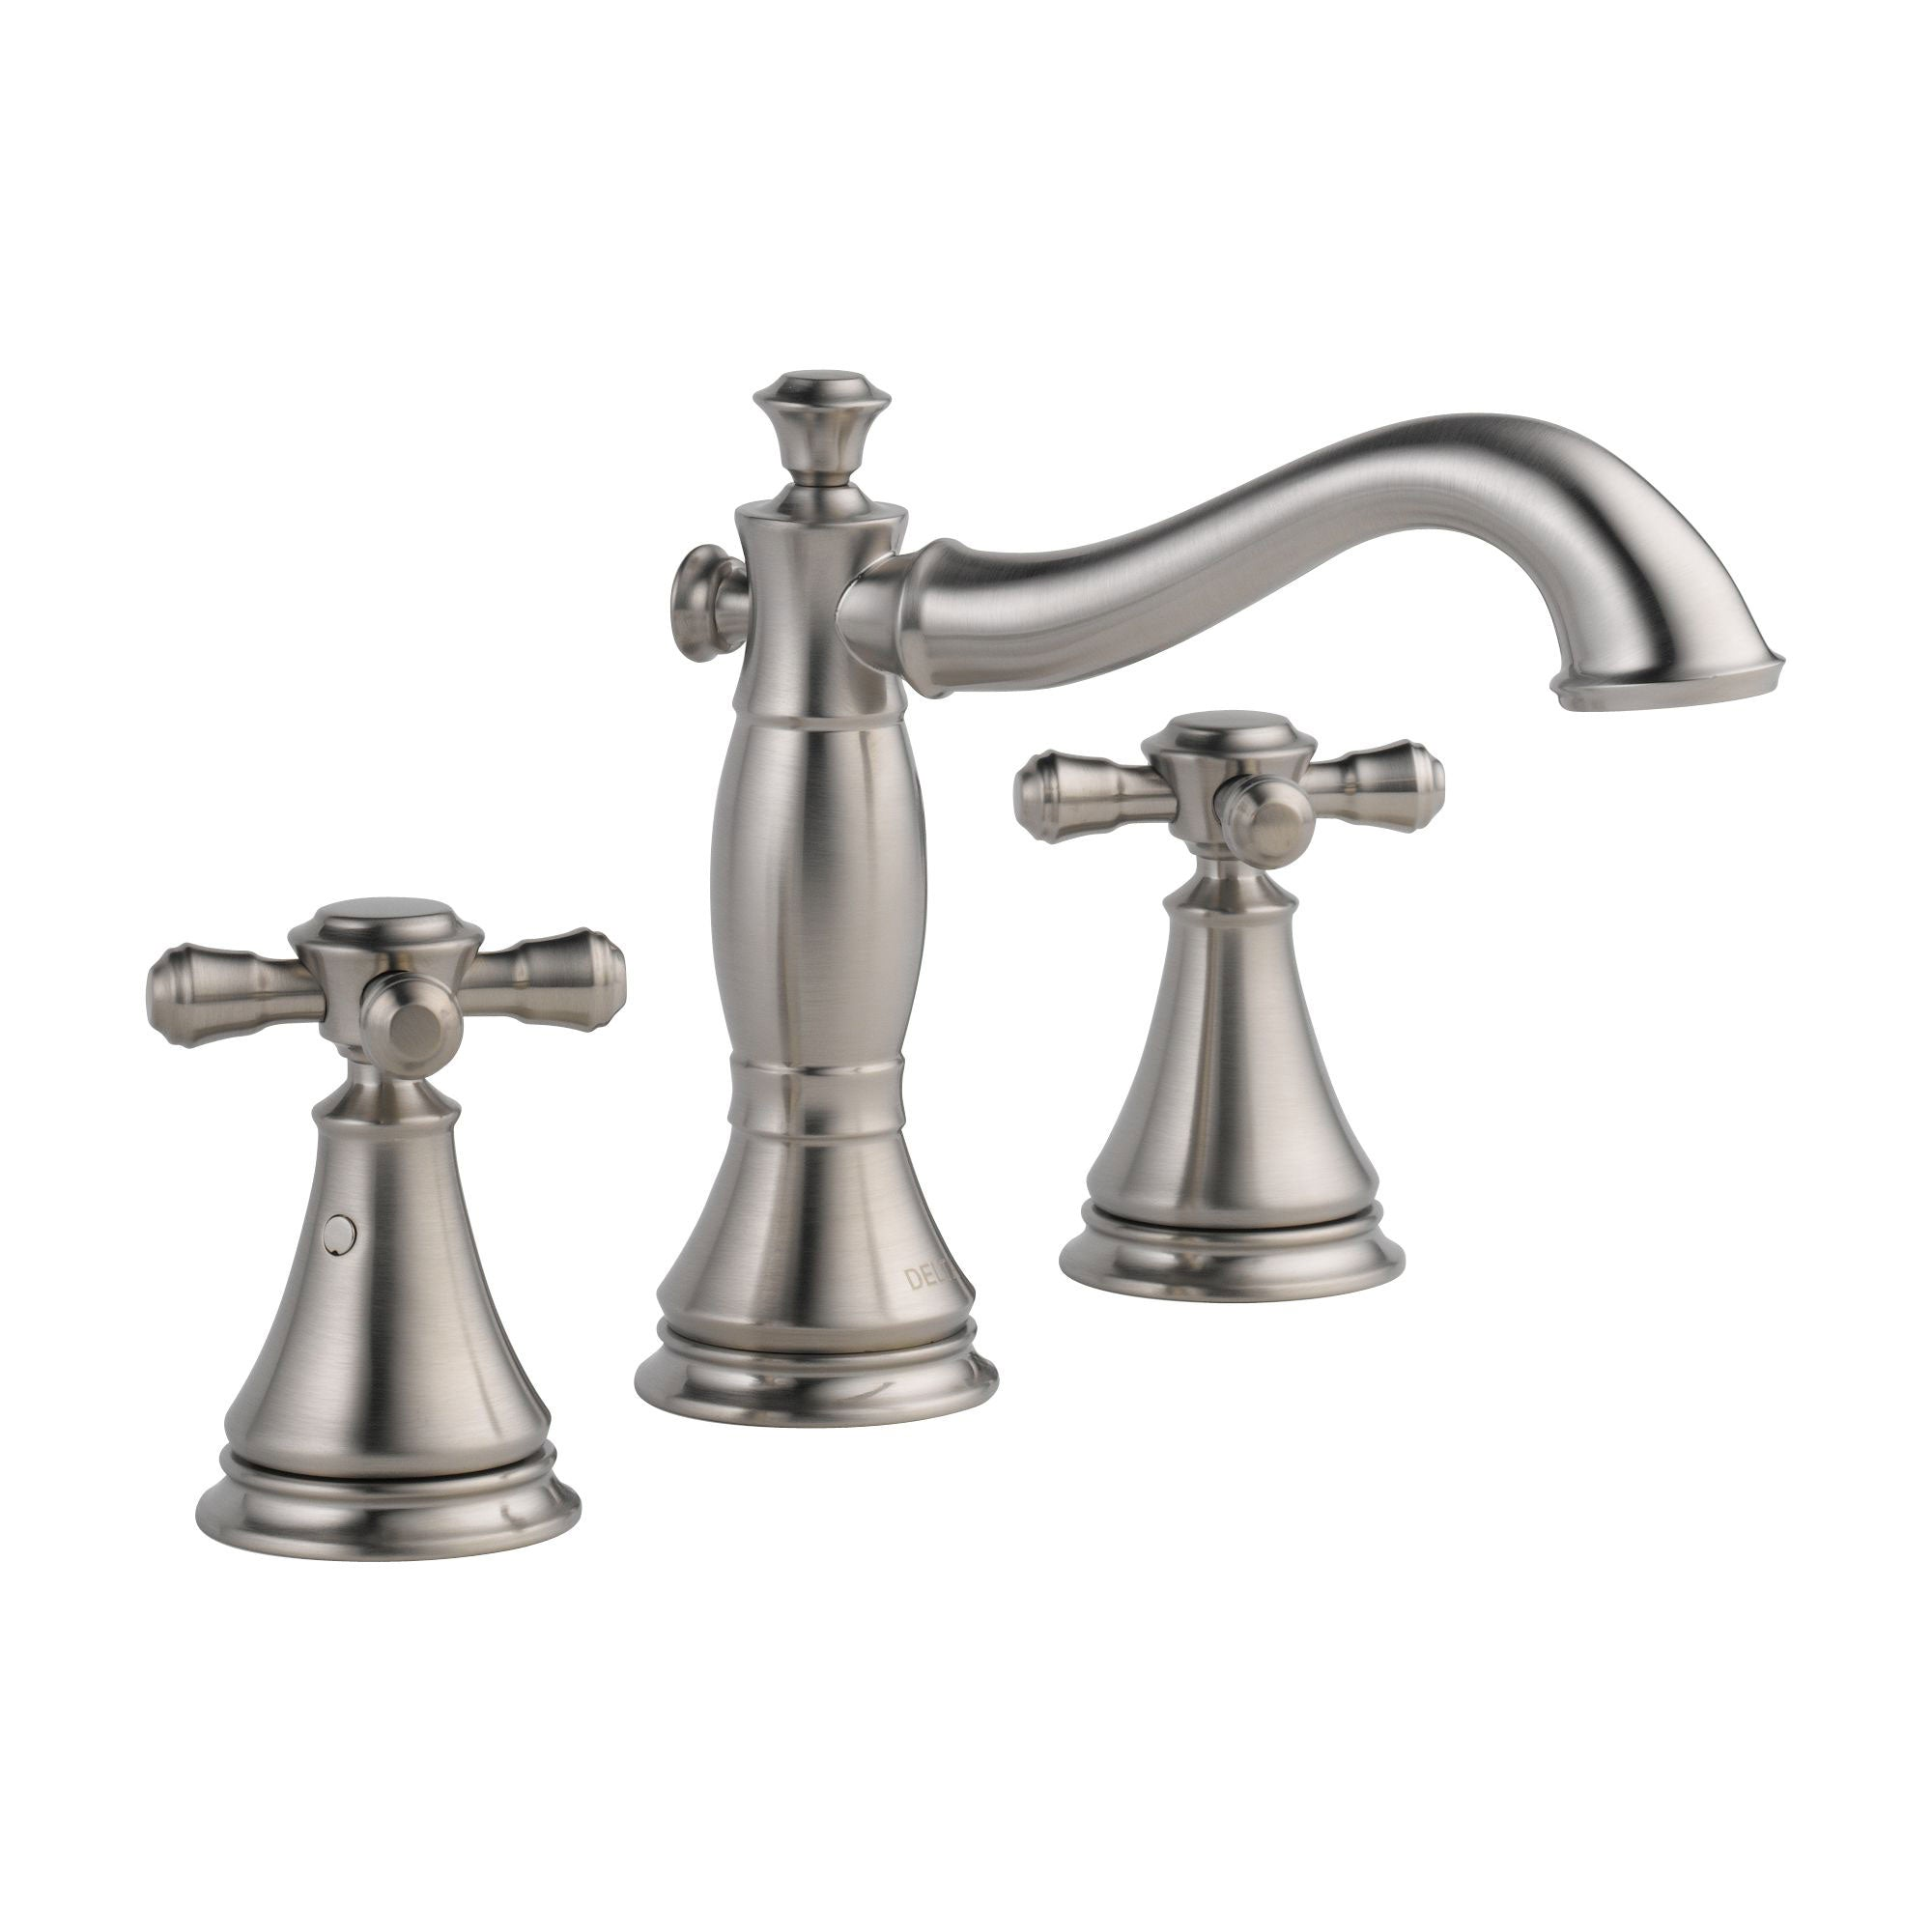 Delta Cassidy Stainless Steel Finish Wide Spread Lavatory Bathroom Sink Faucet INCLUDES Two Cross Handles and Matching Metal Pop-Up Drain D1304V